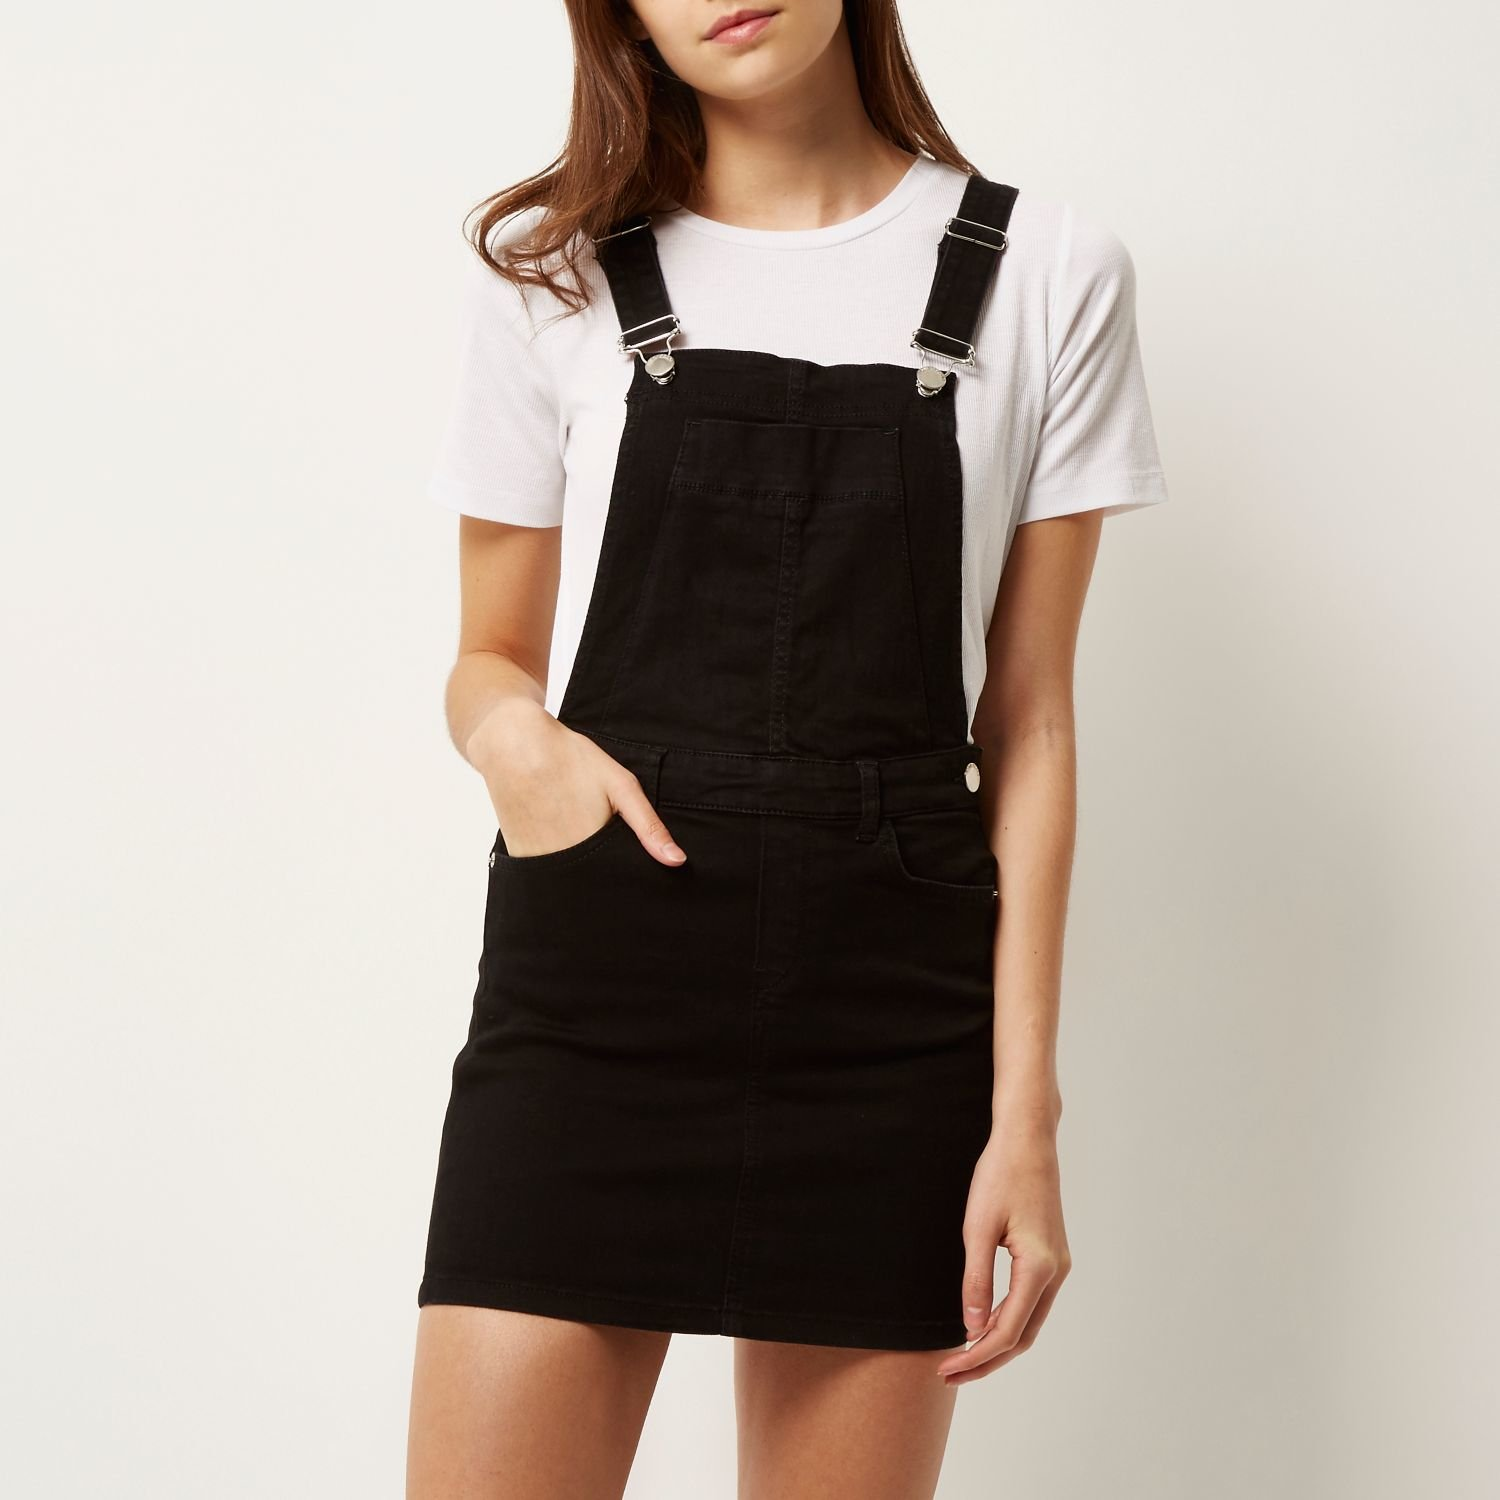 c24280f2a This dungaree dress is so Brit-pop fantastic. Take prep to the disco with